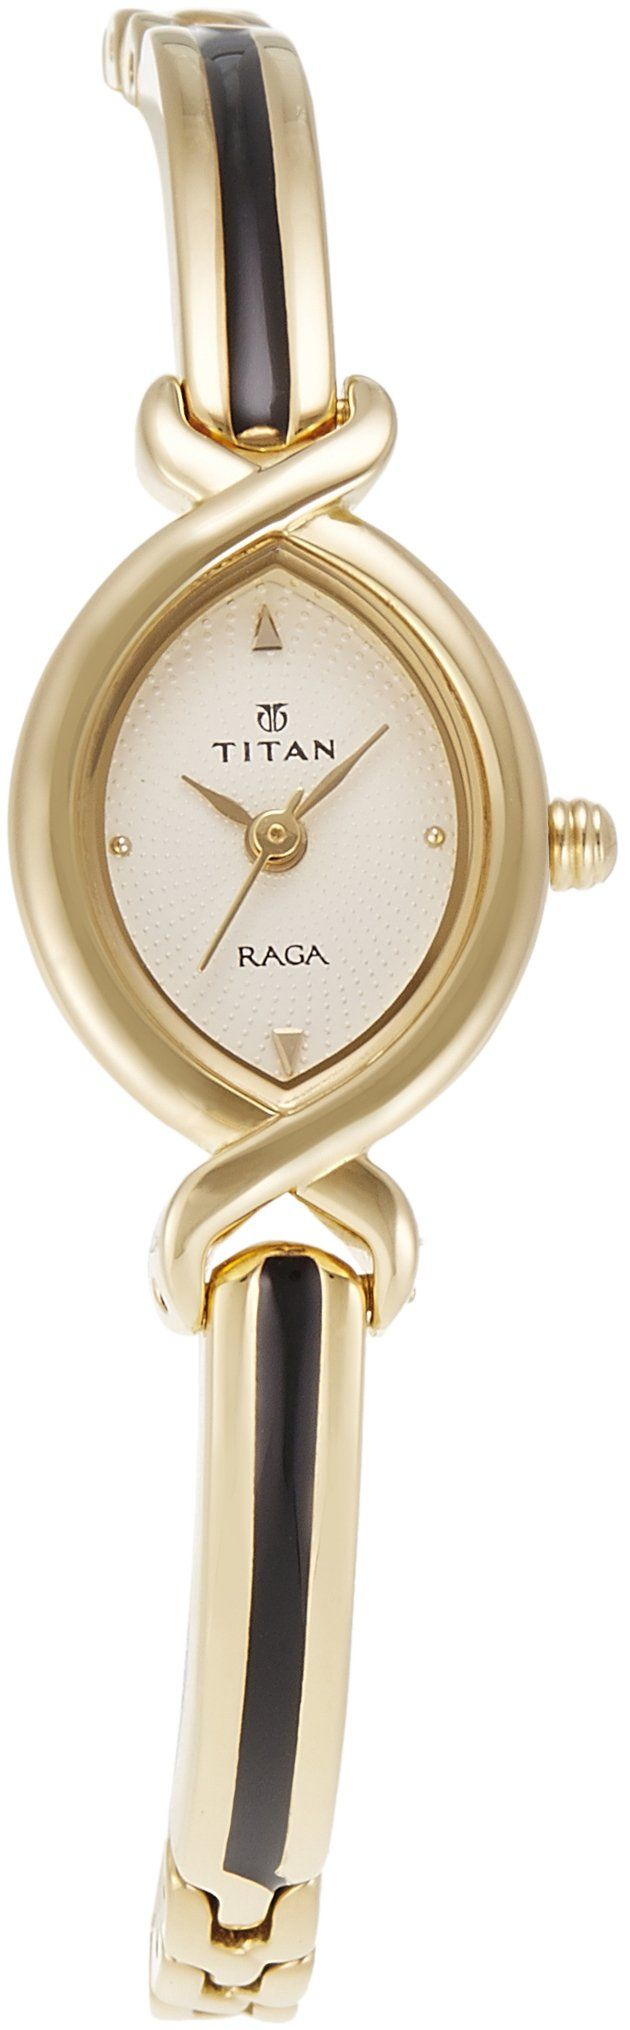 Titan Raga Analog Gold Dial Women's Watch